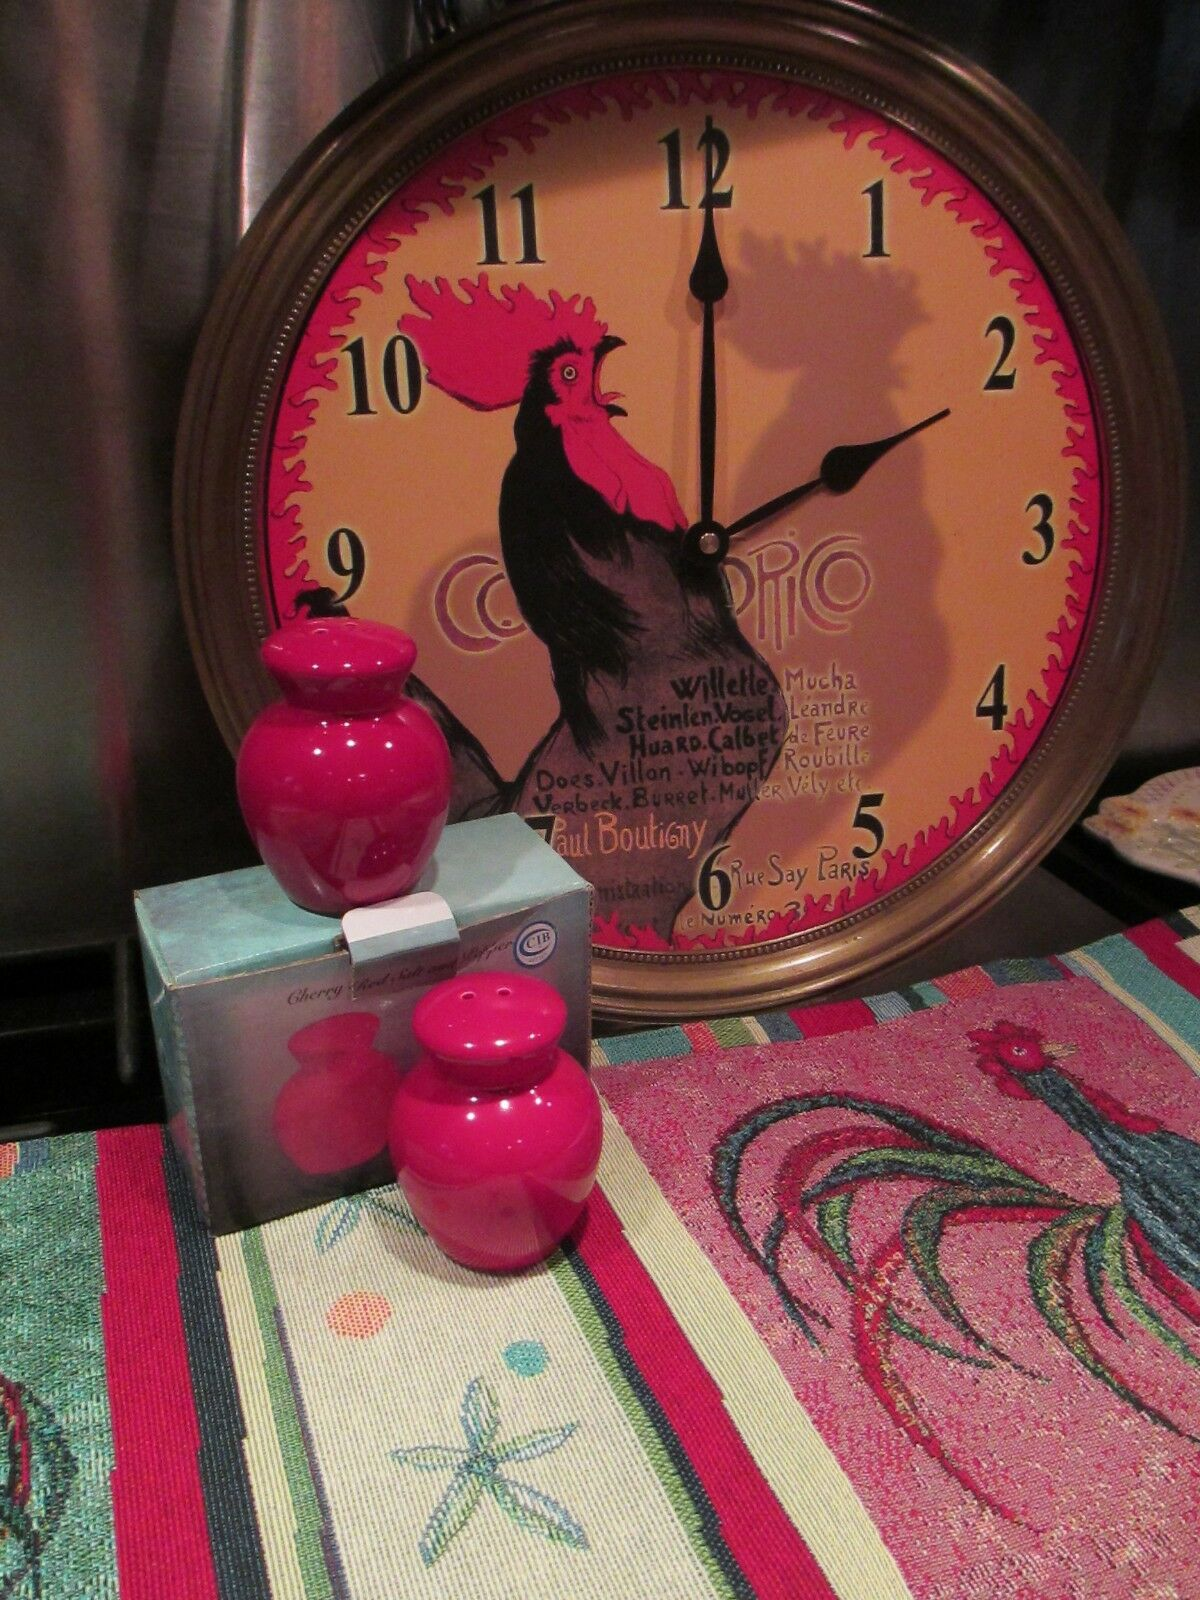 Red Rooster ~ Kitchen Set~ Clock ~ Tapestry Runner U0026 Salt U0026 Pepper Shakers  1 Of 11 Red Rooster ~ Kitchen Set~ ...